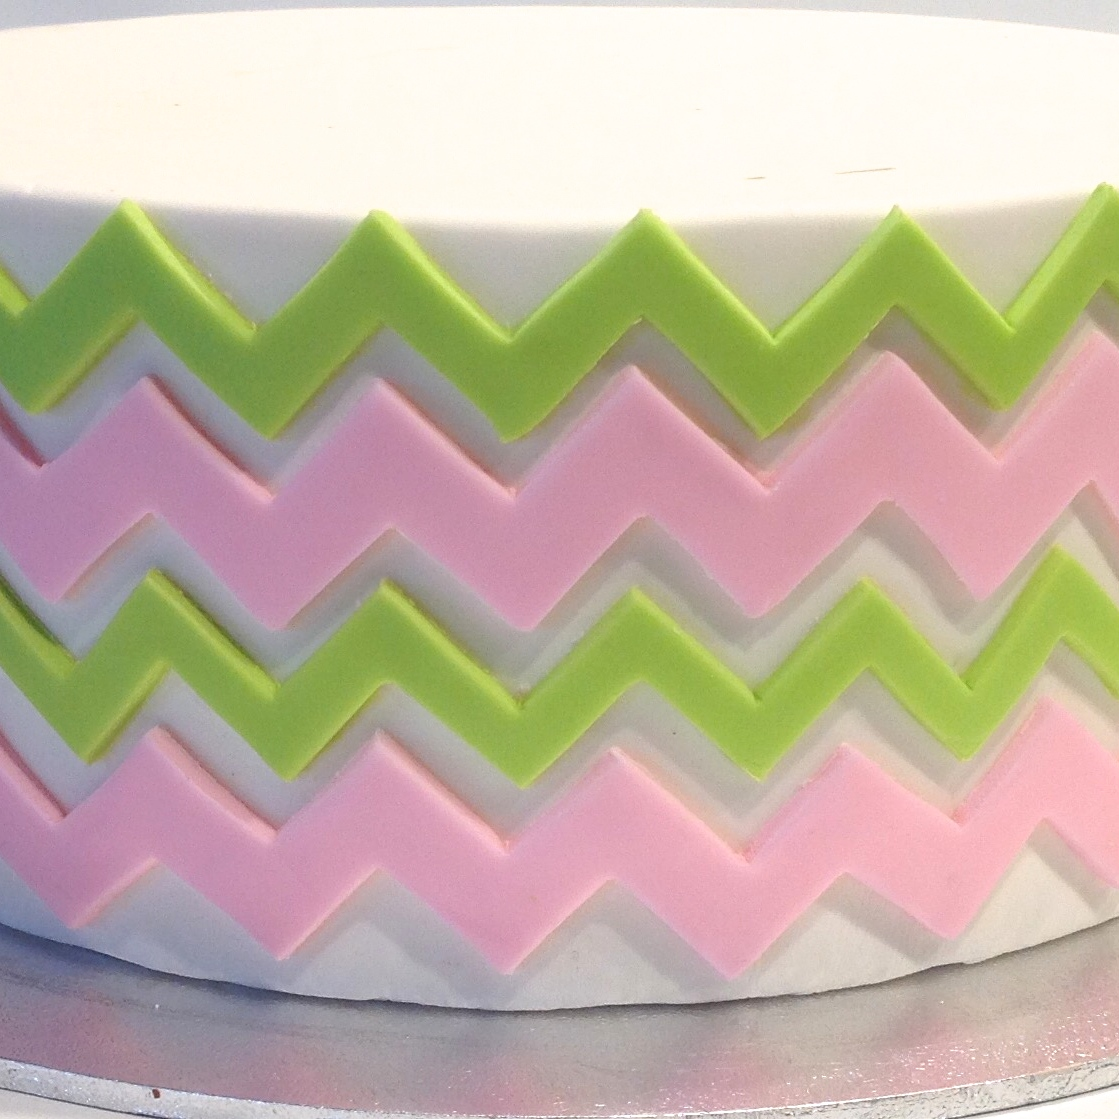 Chevron pattern acrylic template how to cuttercraft for How to make a chevron template